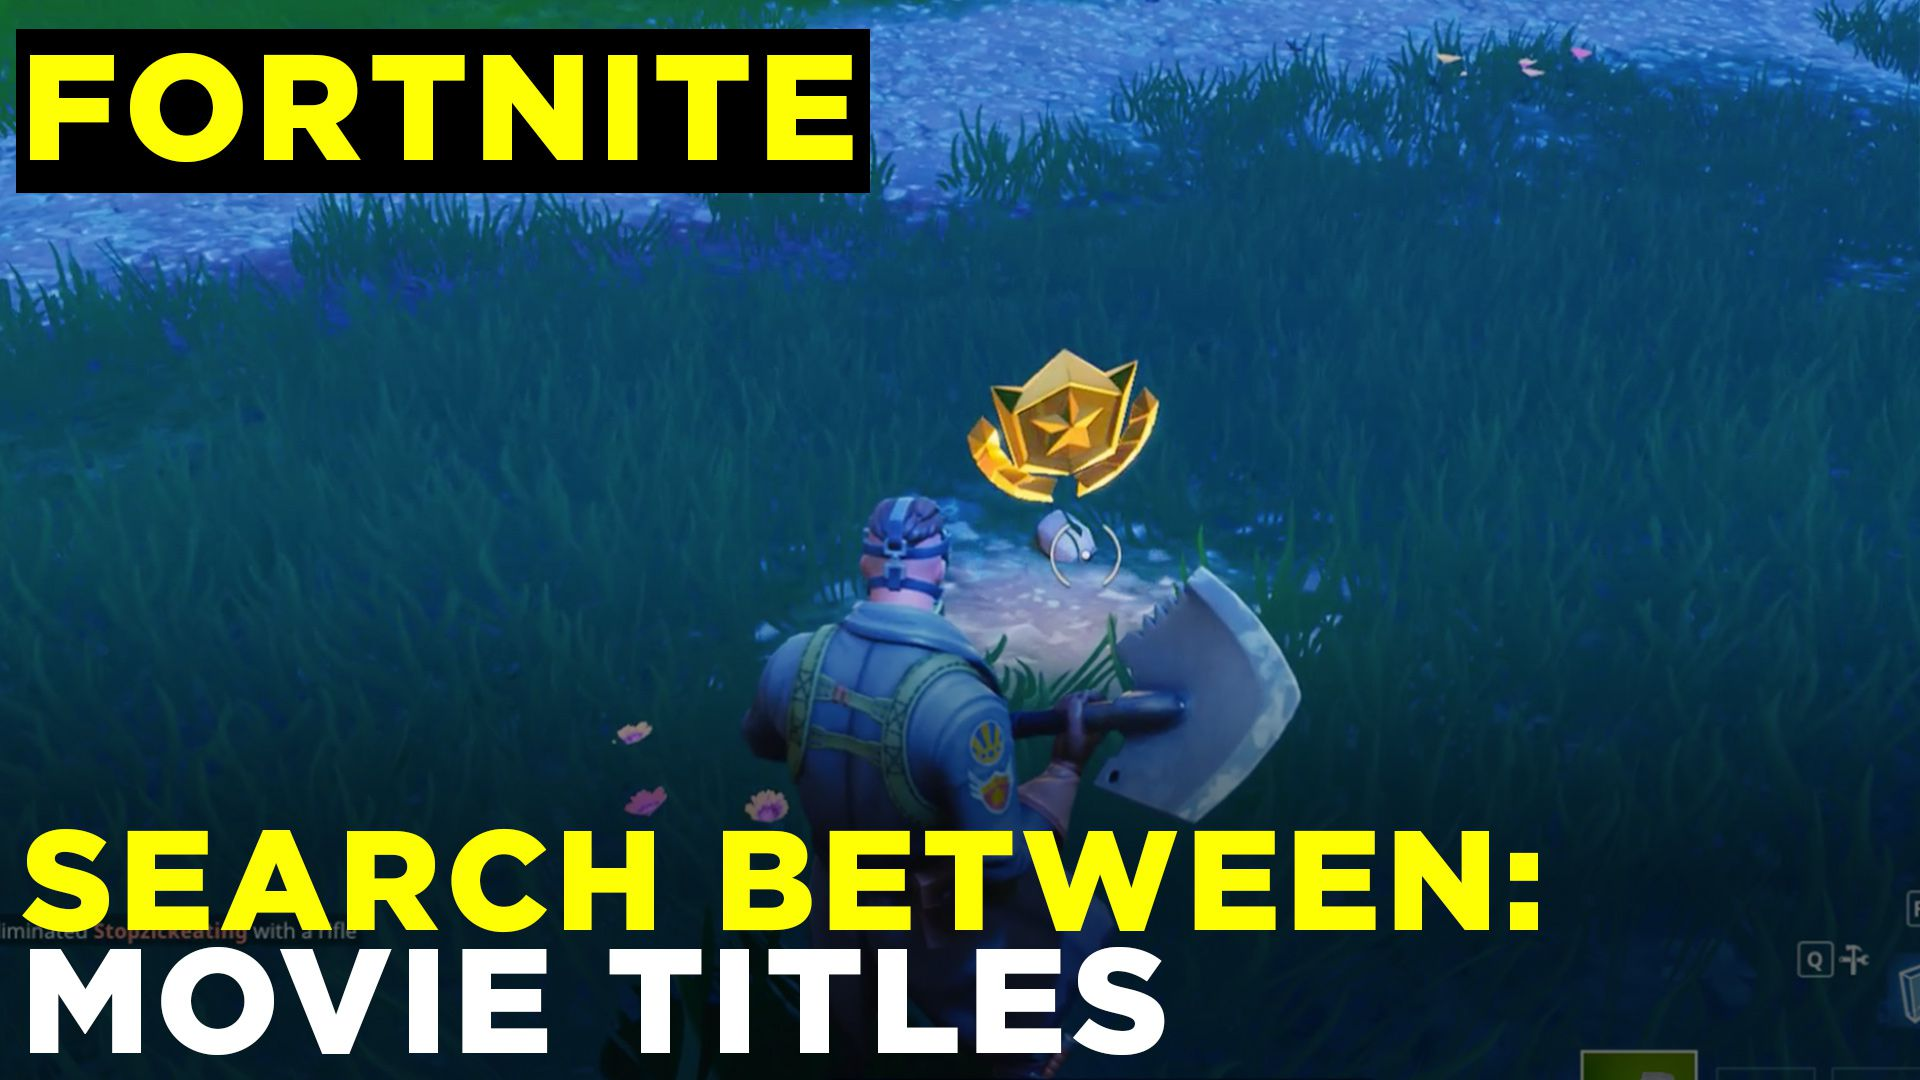 Search between movie titles — Fortnite Challenge Location